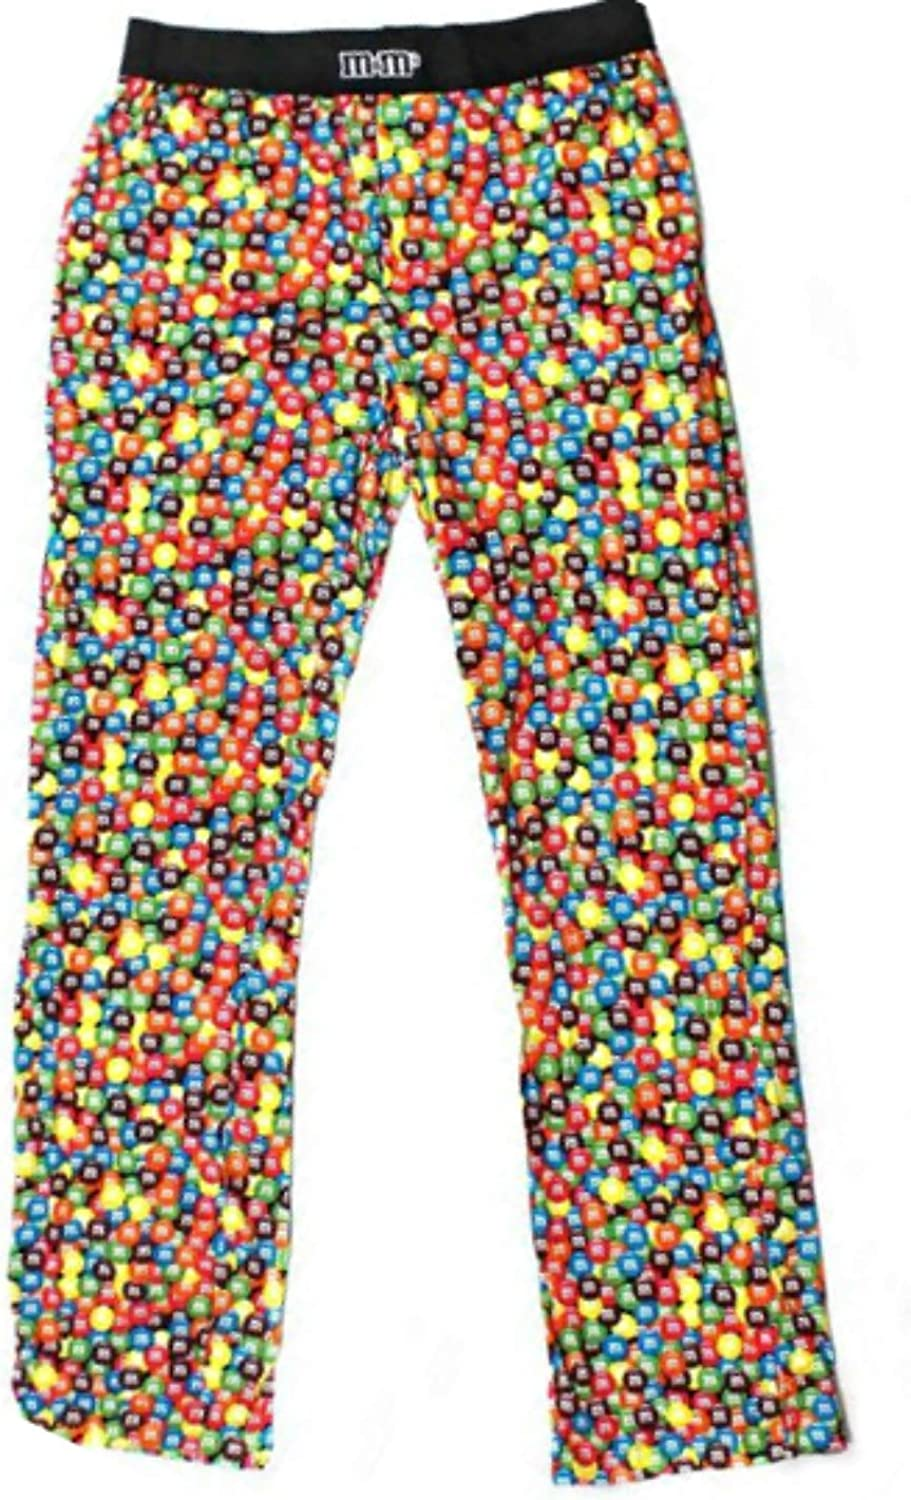 Candy Colorful Print Men's Pajama Lounge Sleep Bottoms Pants M and M PJ at  Amazon Men's Clothing store